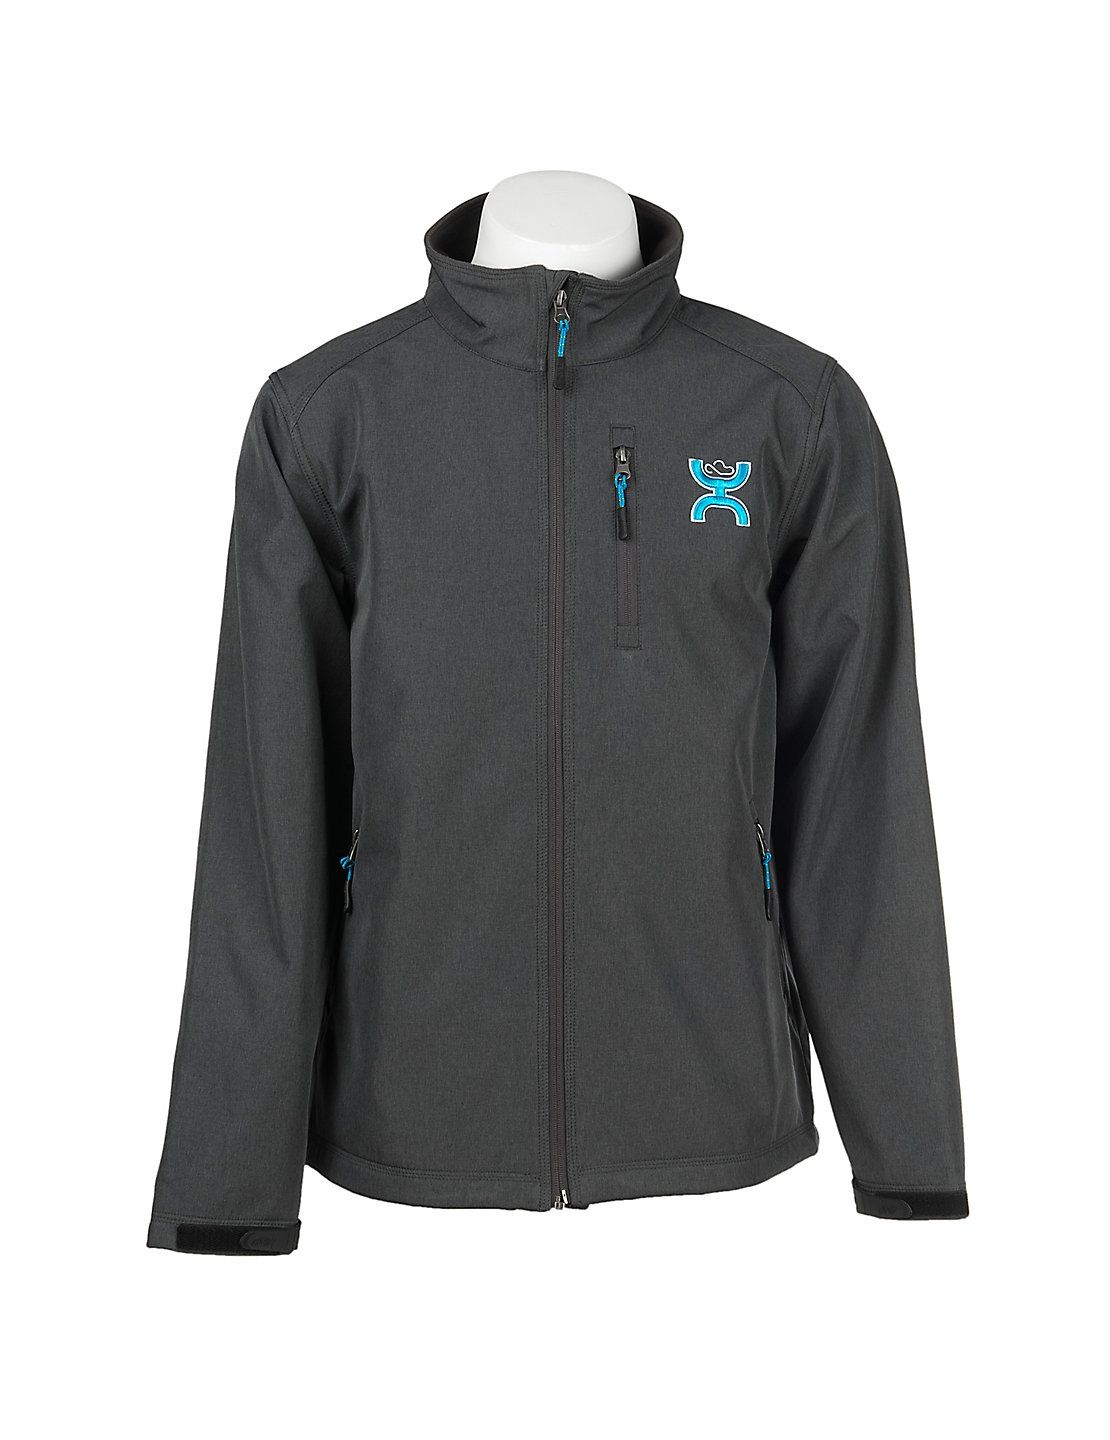 Hooey Men S Grey With Turquoise Logo Long Sleeve Bonded Jacket Cavender S Jackets Men Fashion Smart Casual Outfit Summer Mens Western Wear [ 1440 x 1110 Pixel ]